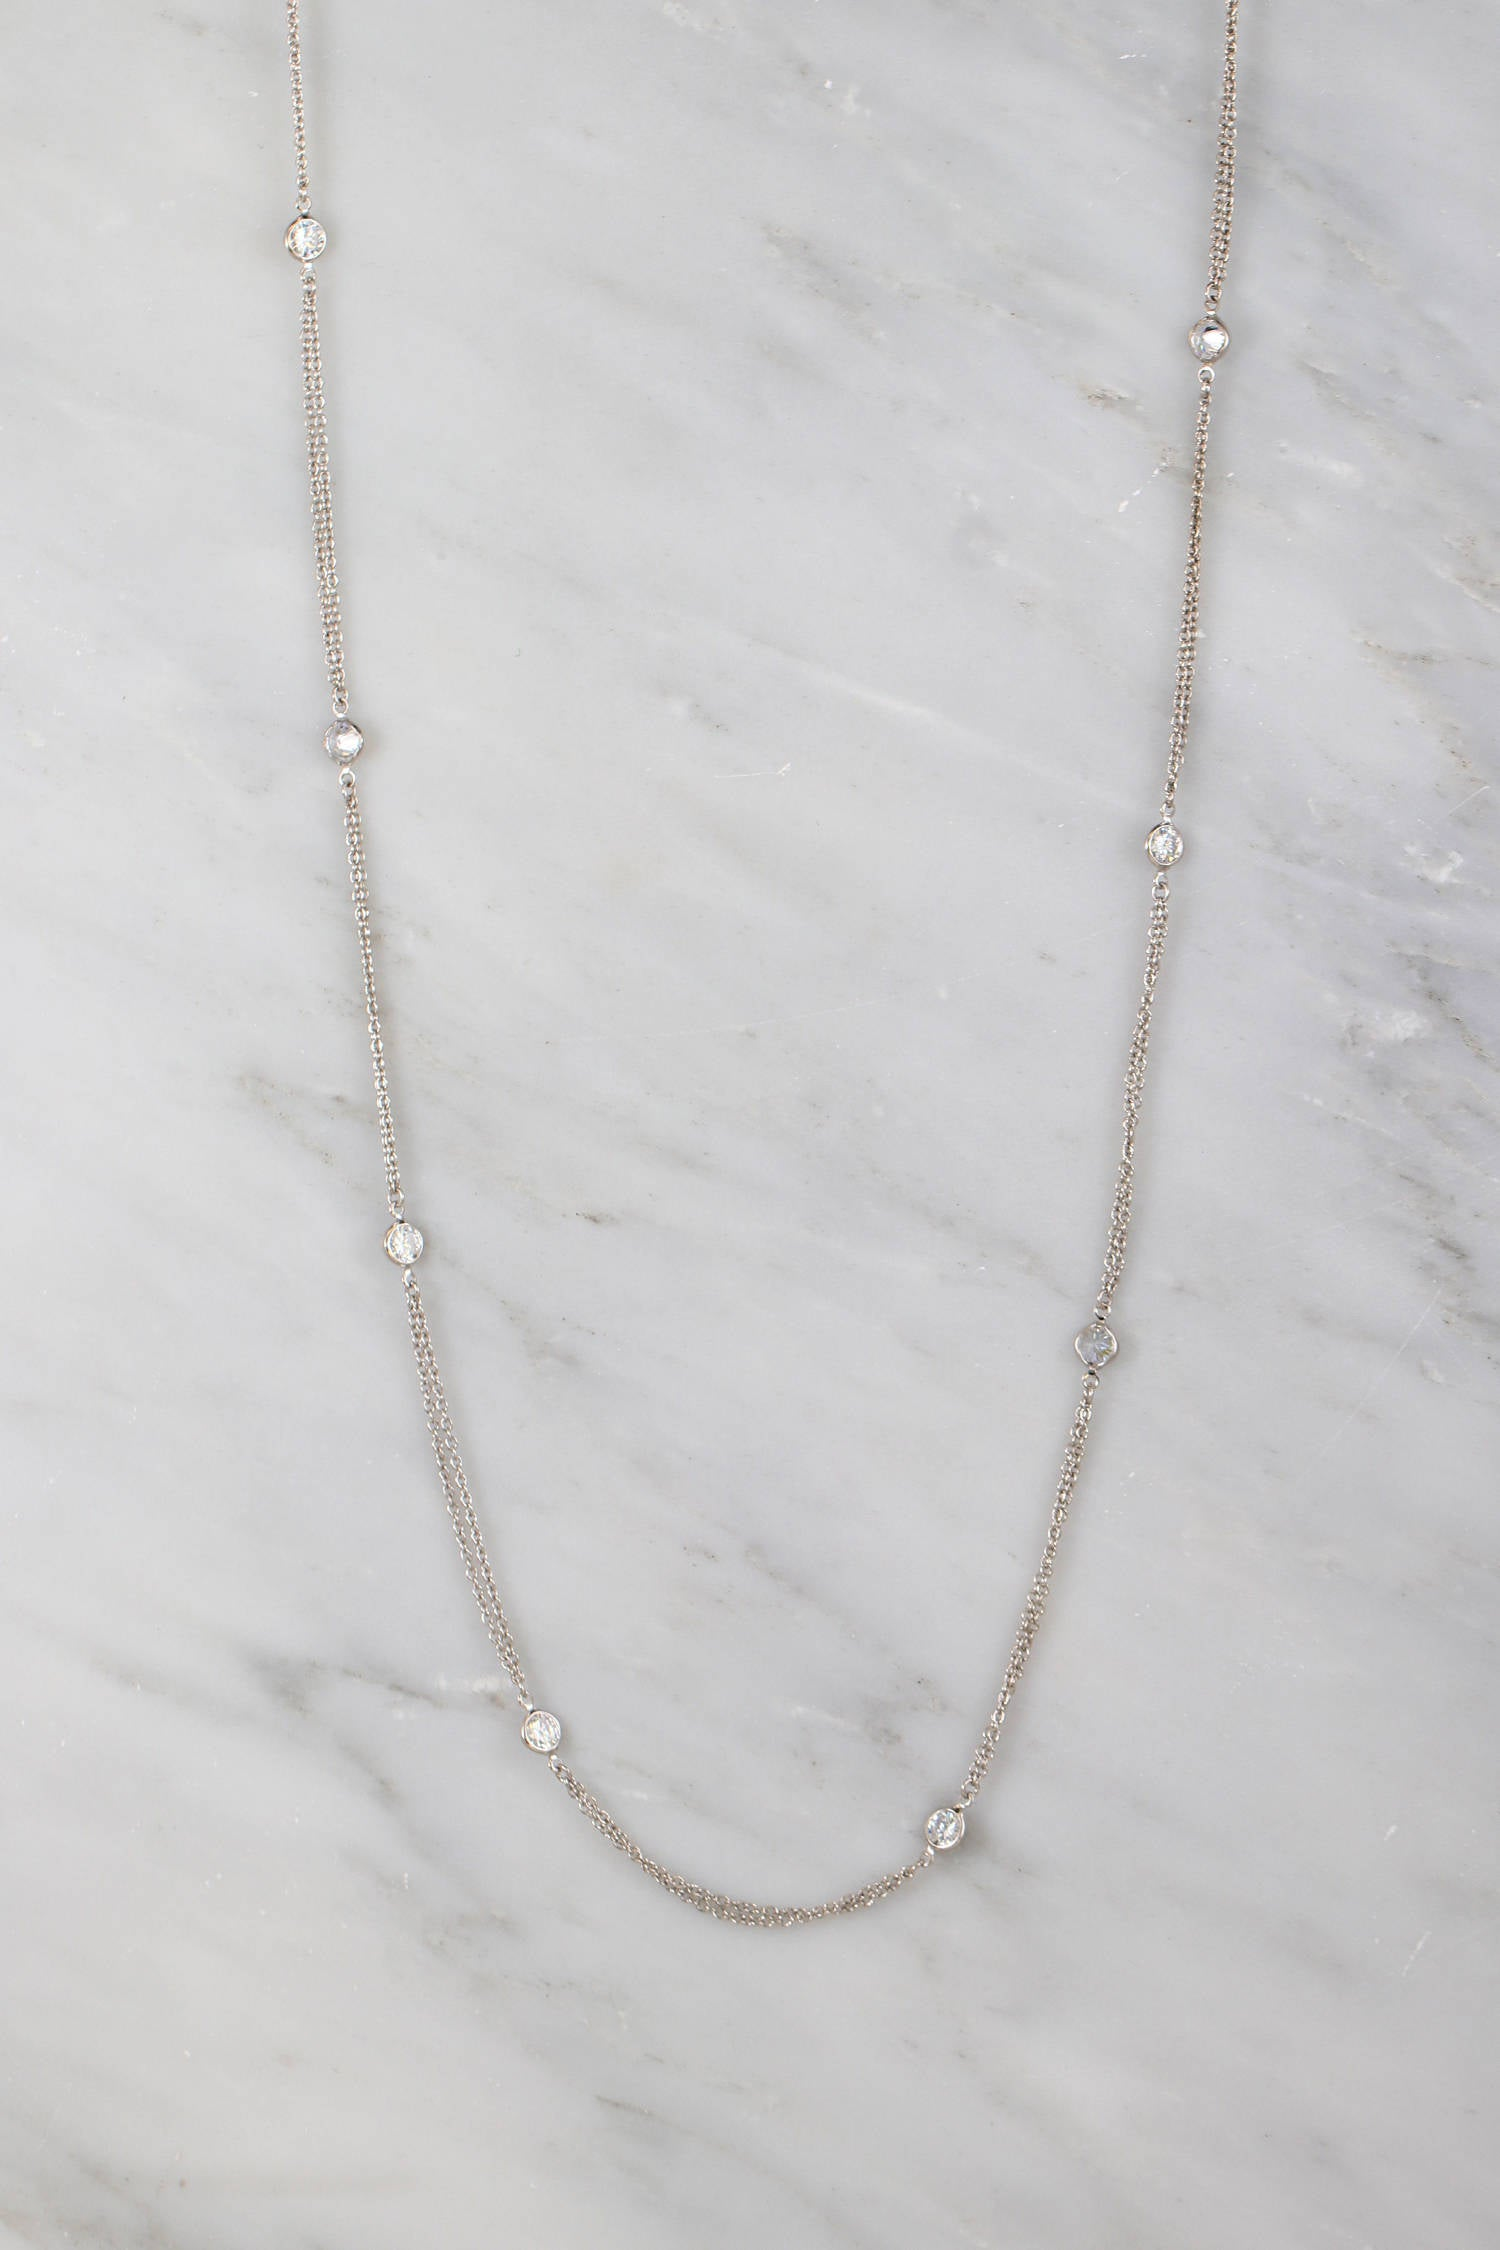 Sterling Silver Necklace, Multi Layered Necklace, Clear Quartz Long Chain Necklace, Crystal Quartz Necklace, Perfect Necklace for Summer